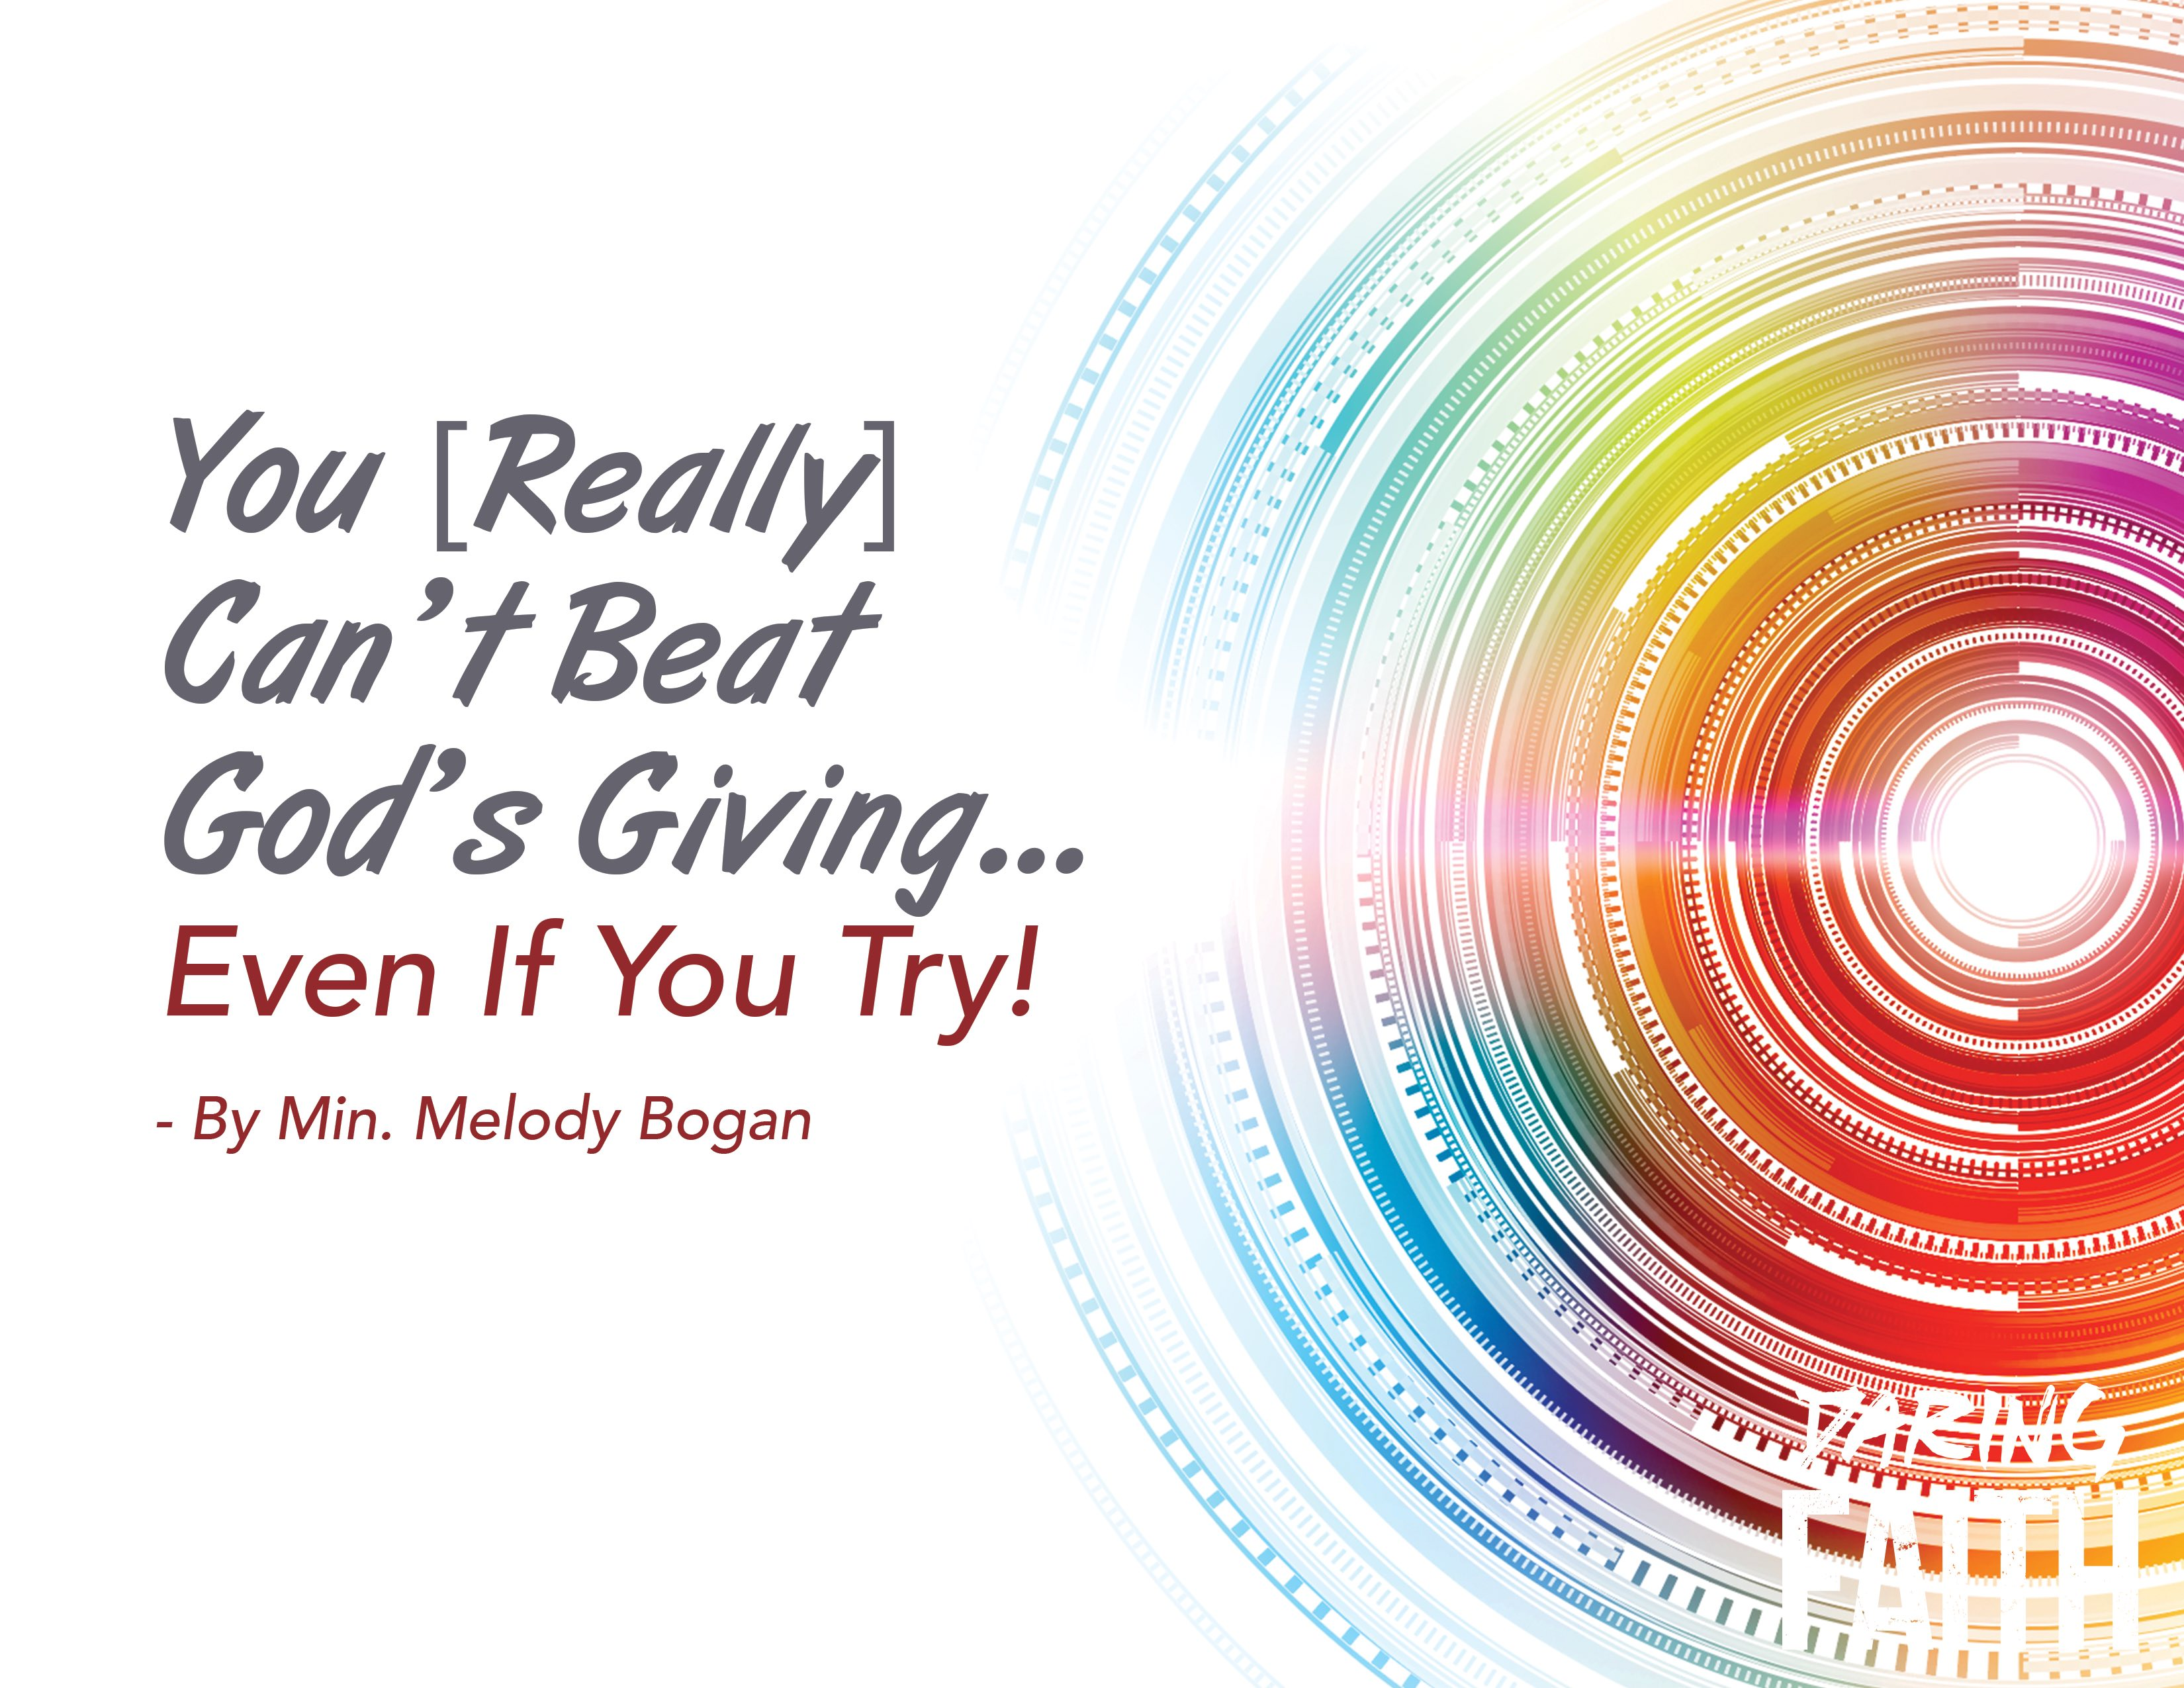 Can't Beat God Giving - Melody Bogan